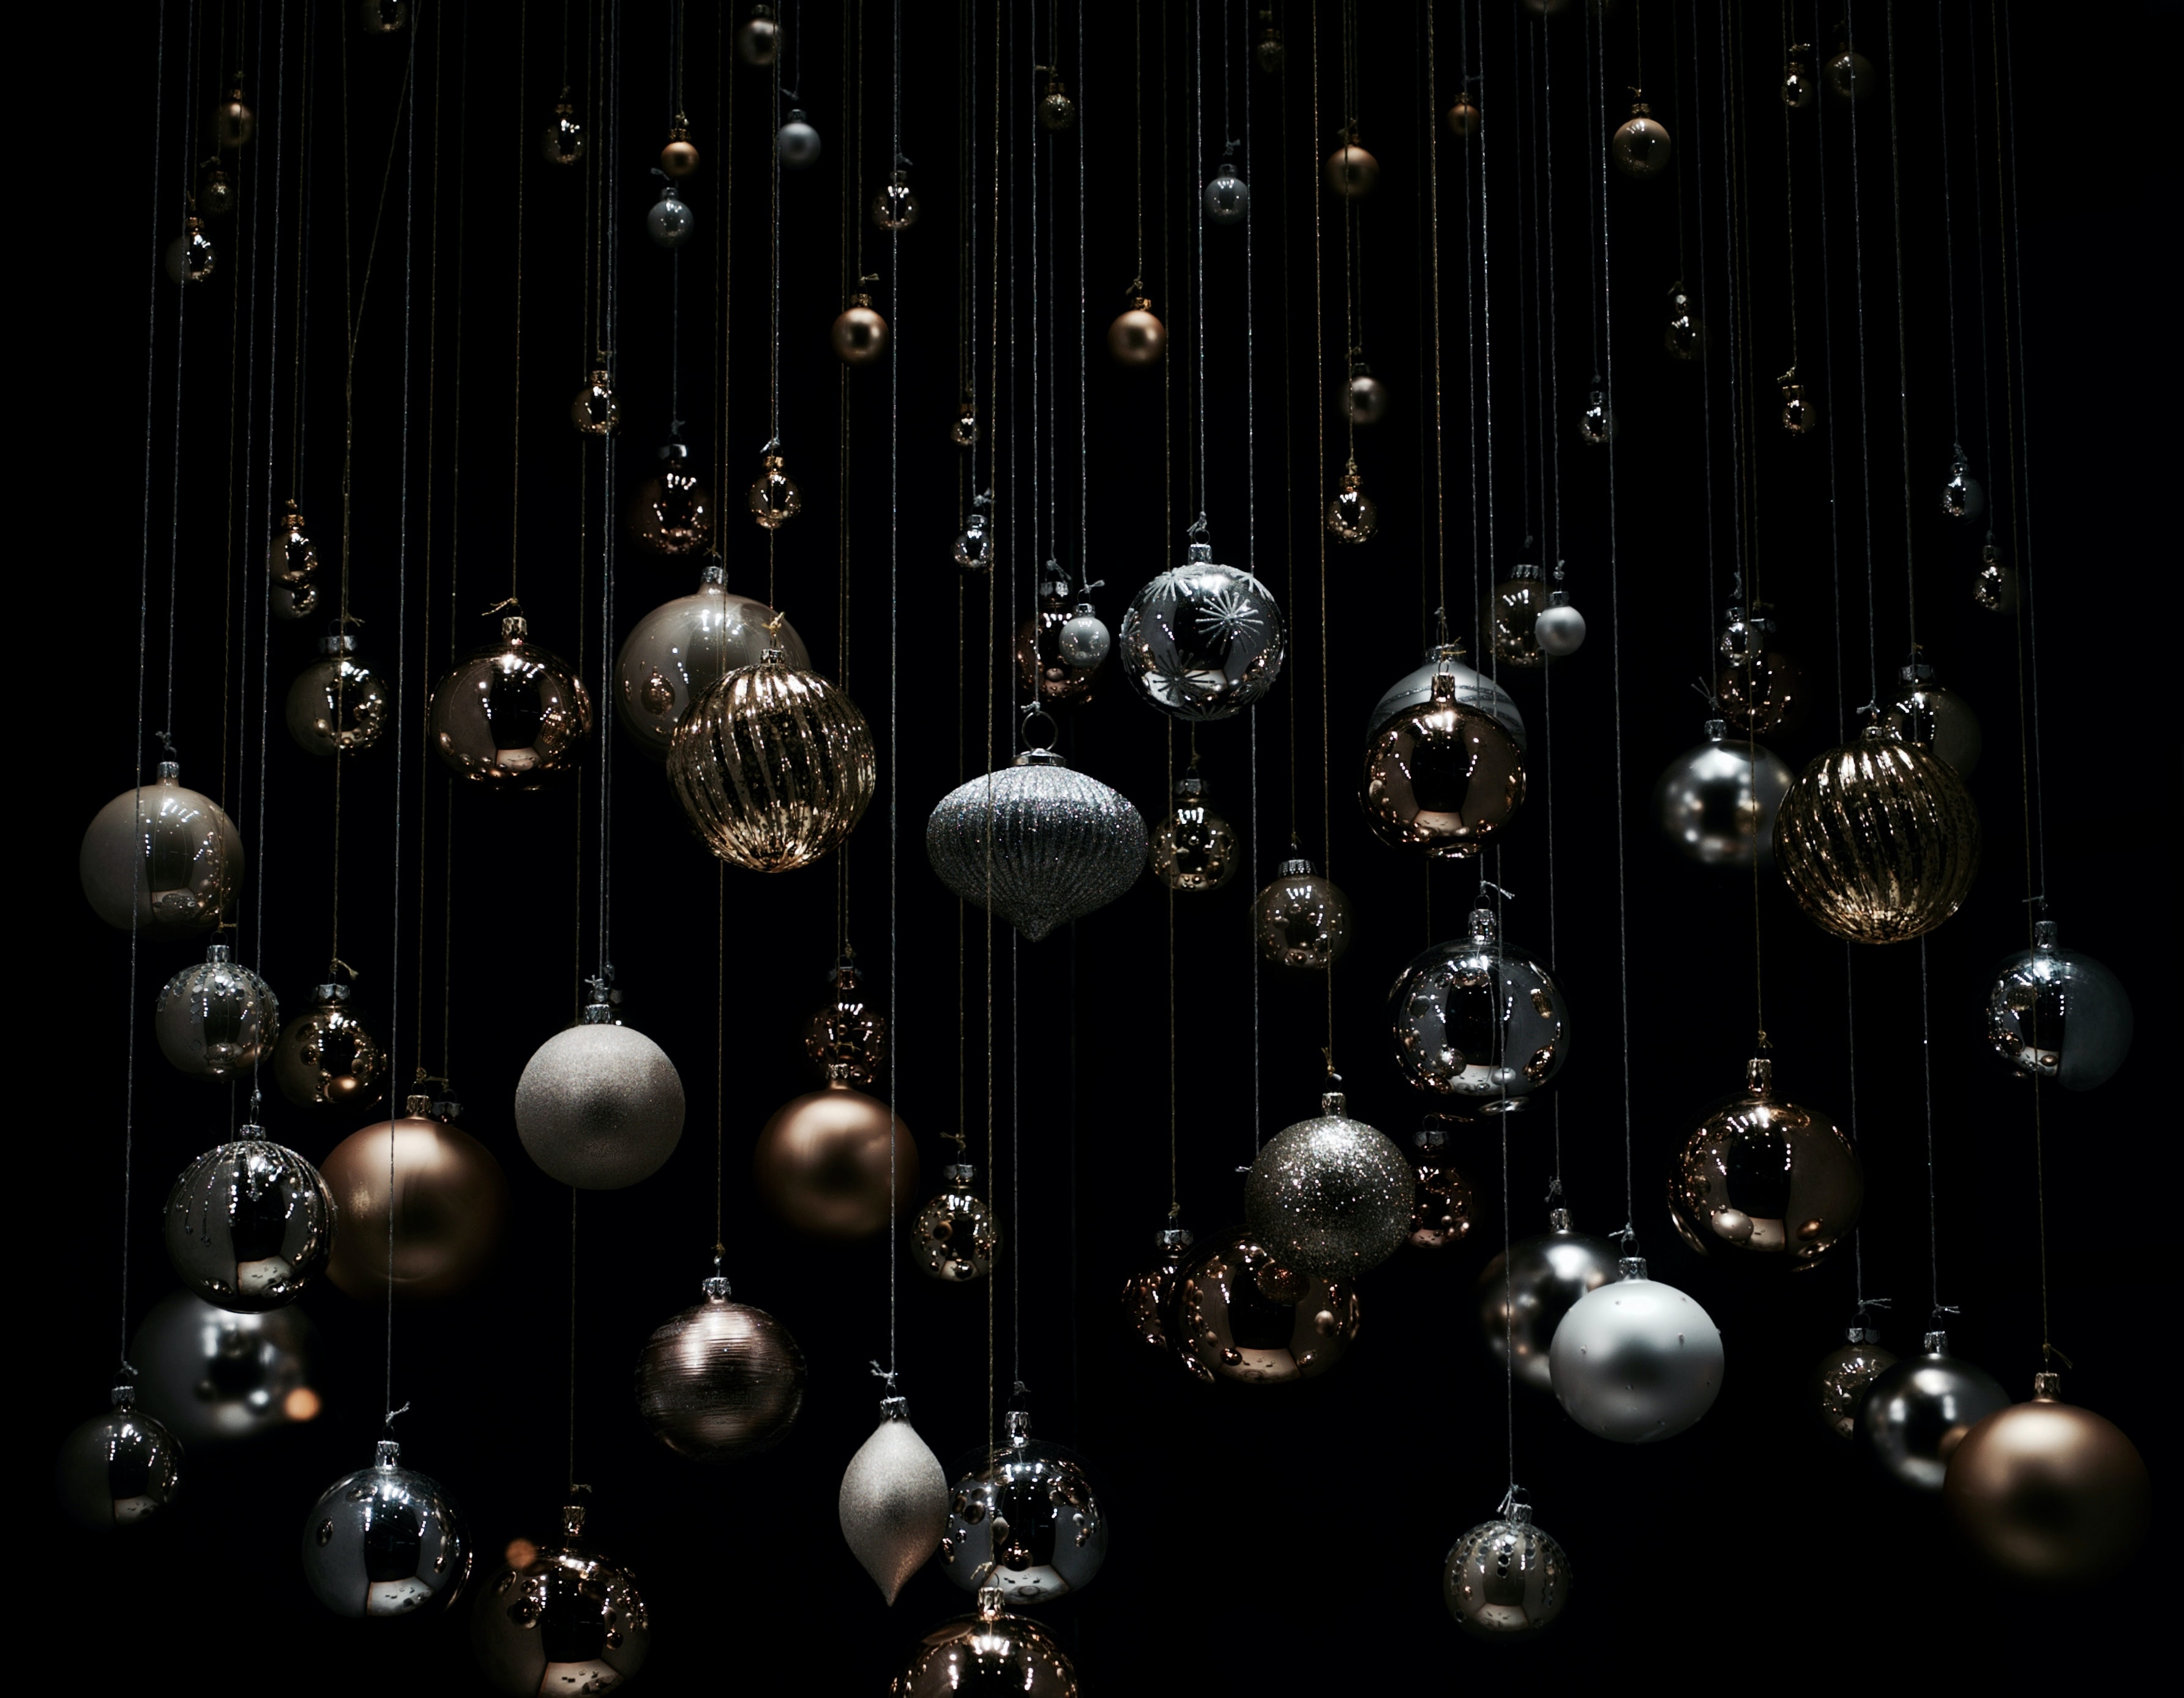 Dangling silver Christmas ornaments surrounded by darkness.